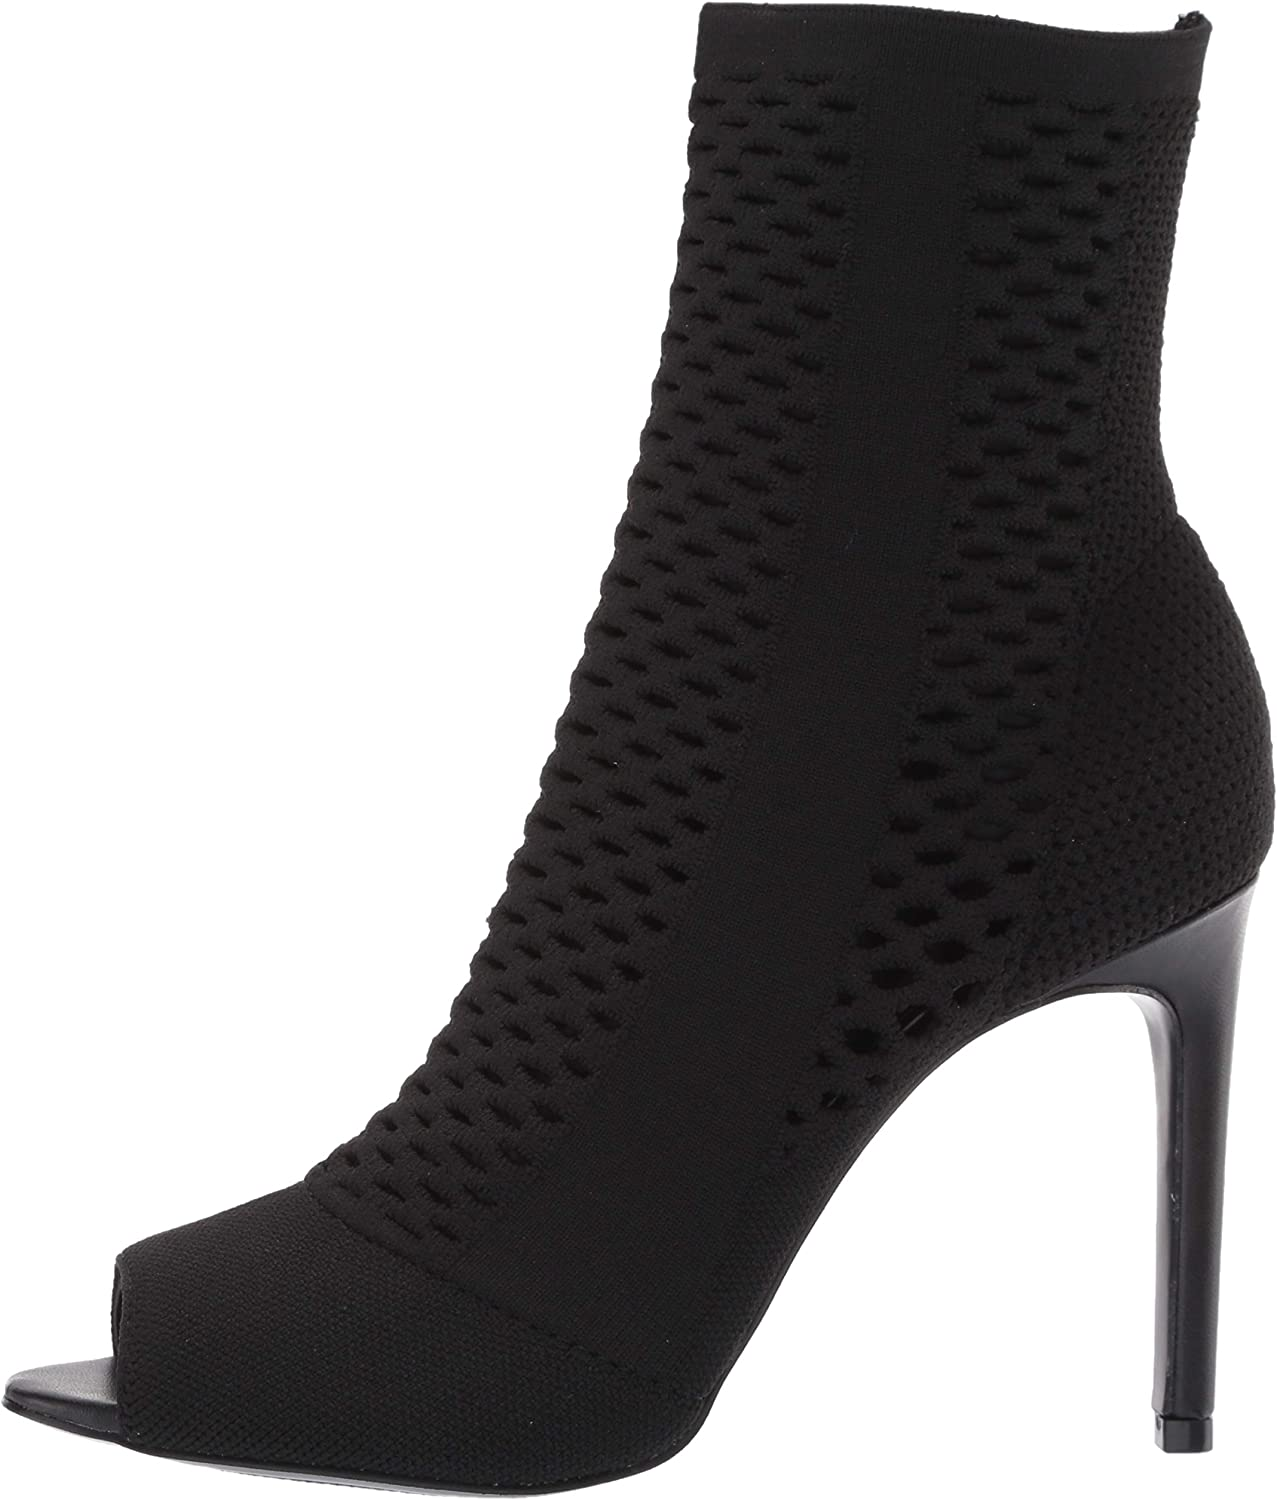 Charles by Charles David Womens Inspector Ankle Boot